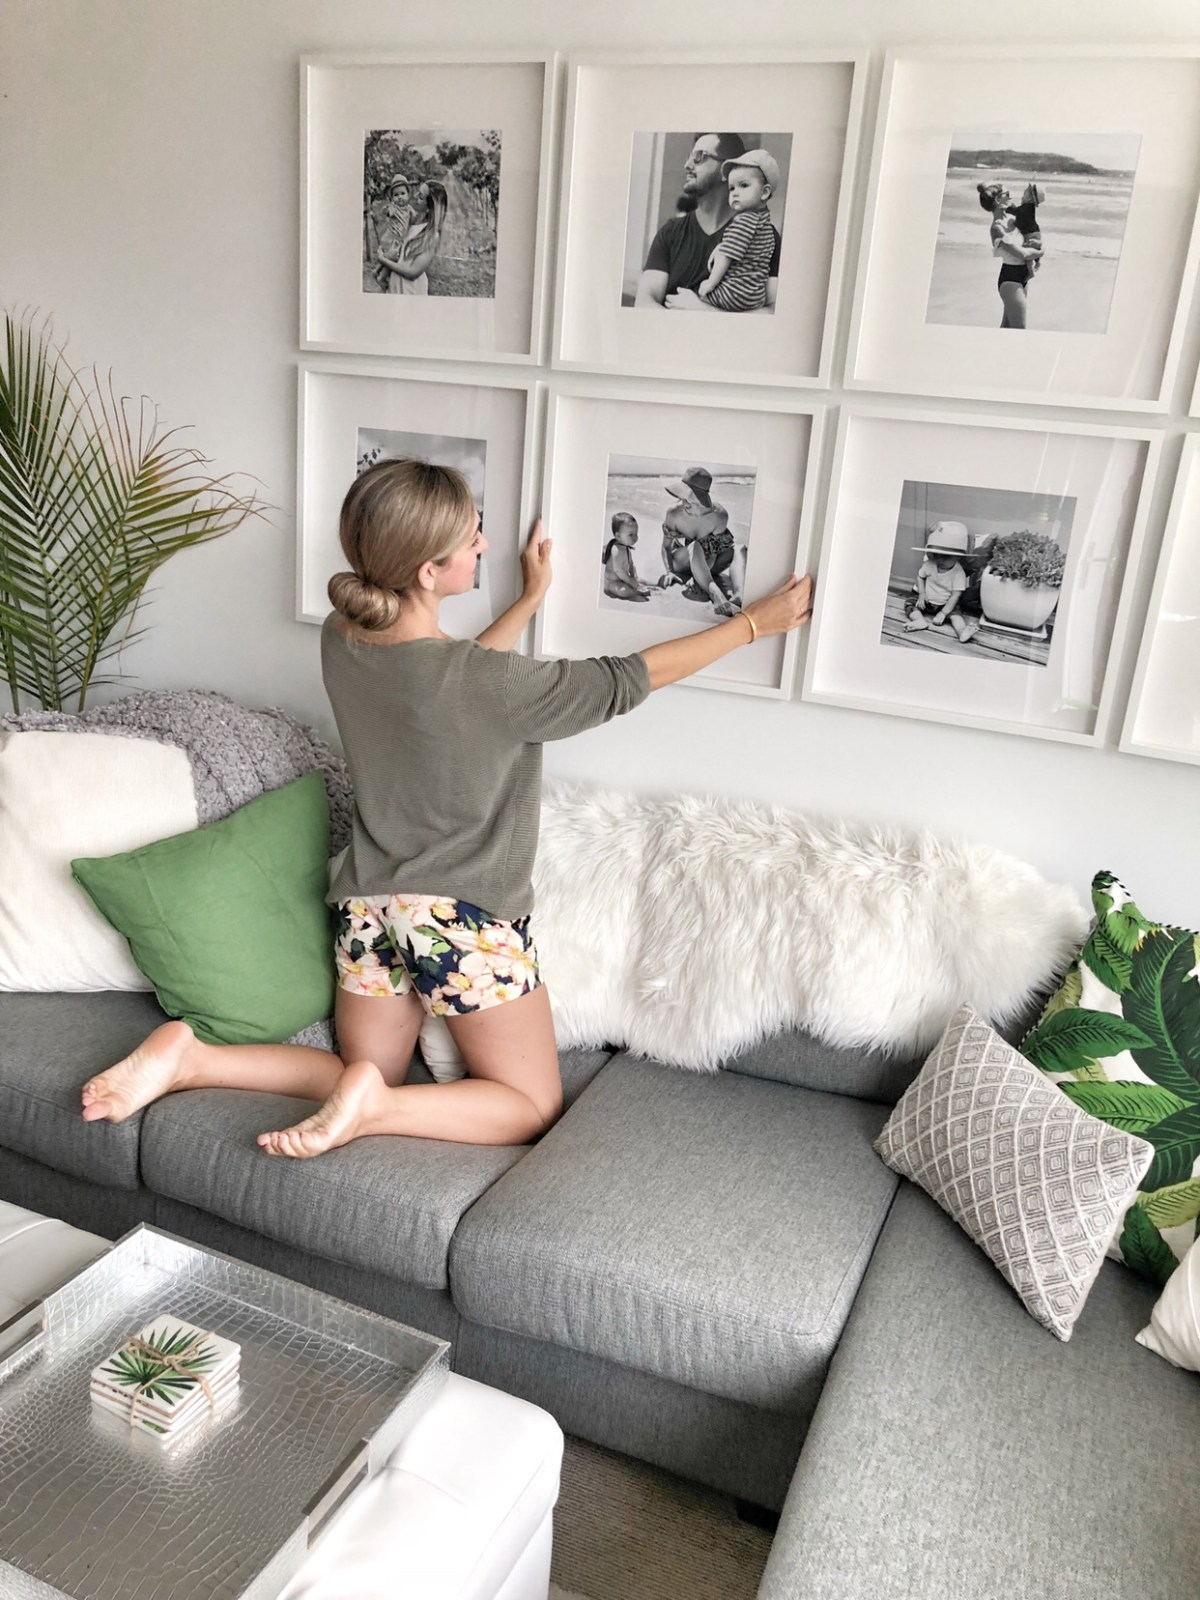 How to create a grid-style gallery wall of family photos! • This